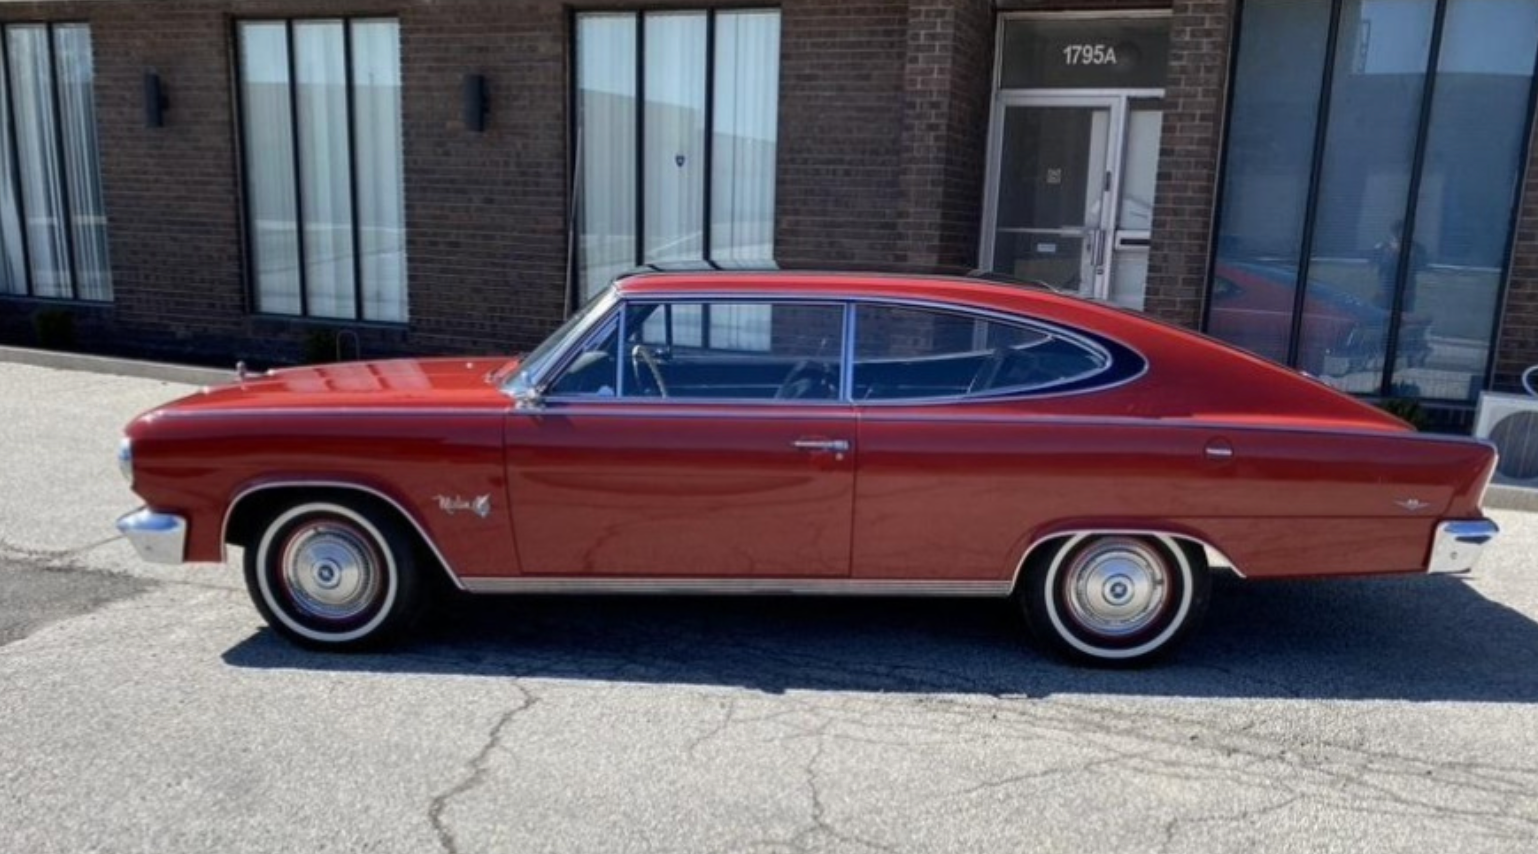 Ranking The Ugliest American Cars Of The '60s   HotCars